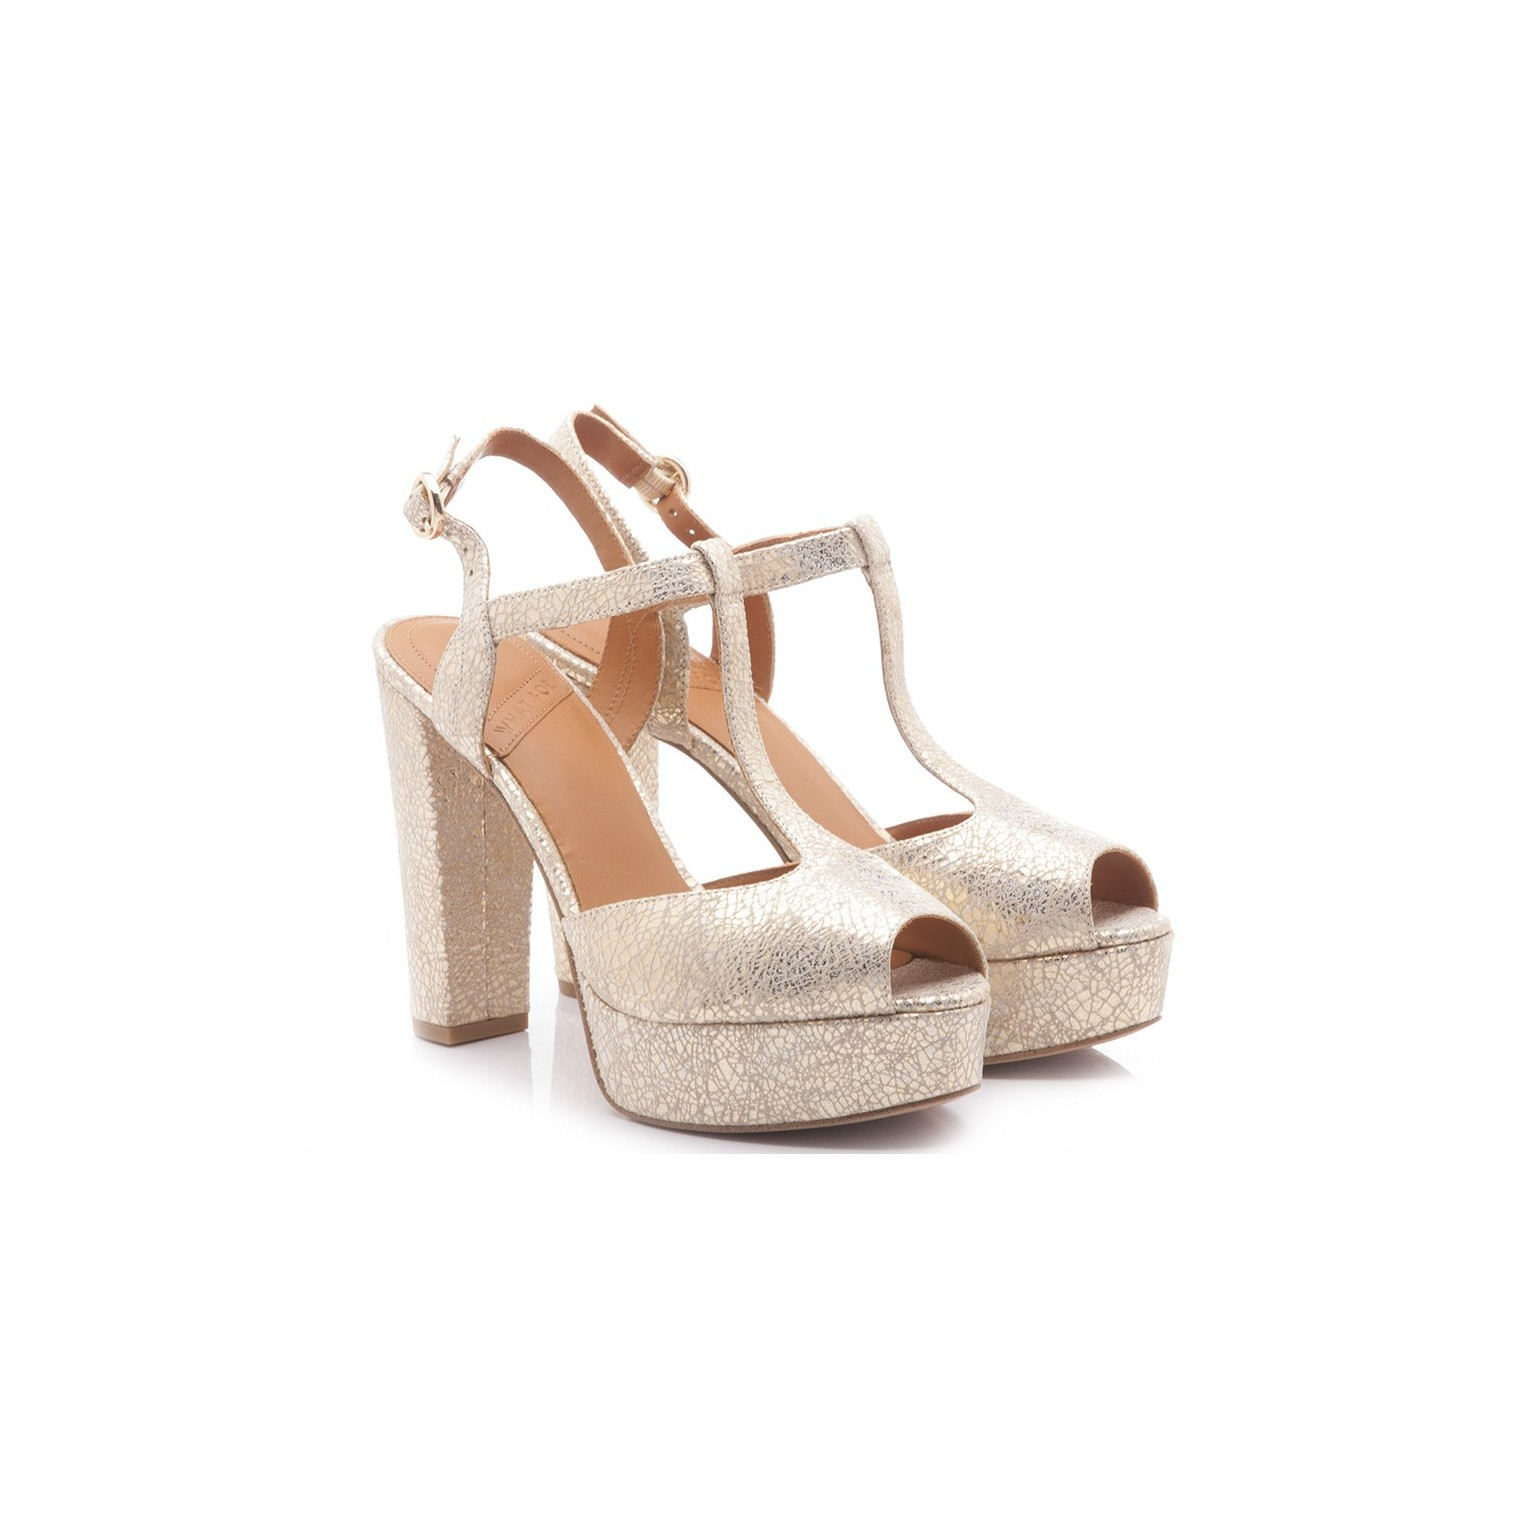 What For Women's Sandals High Heel Leather Beige Lamè